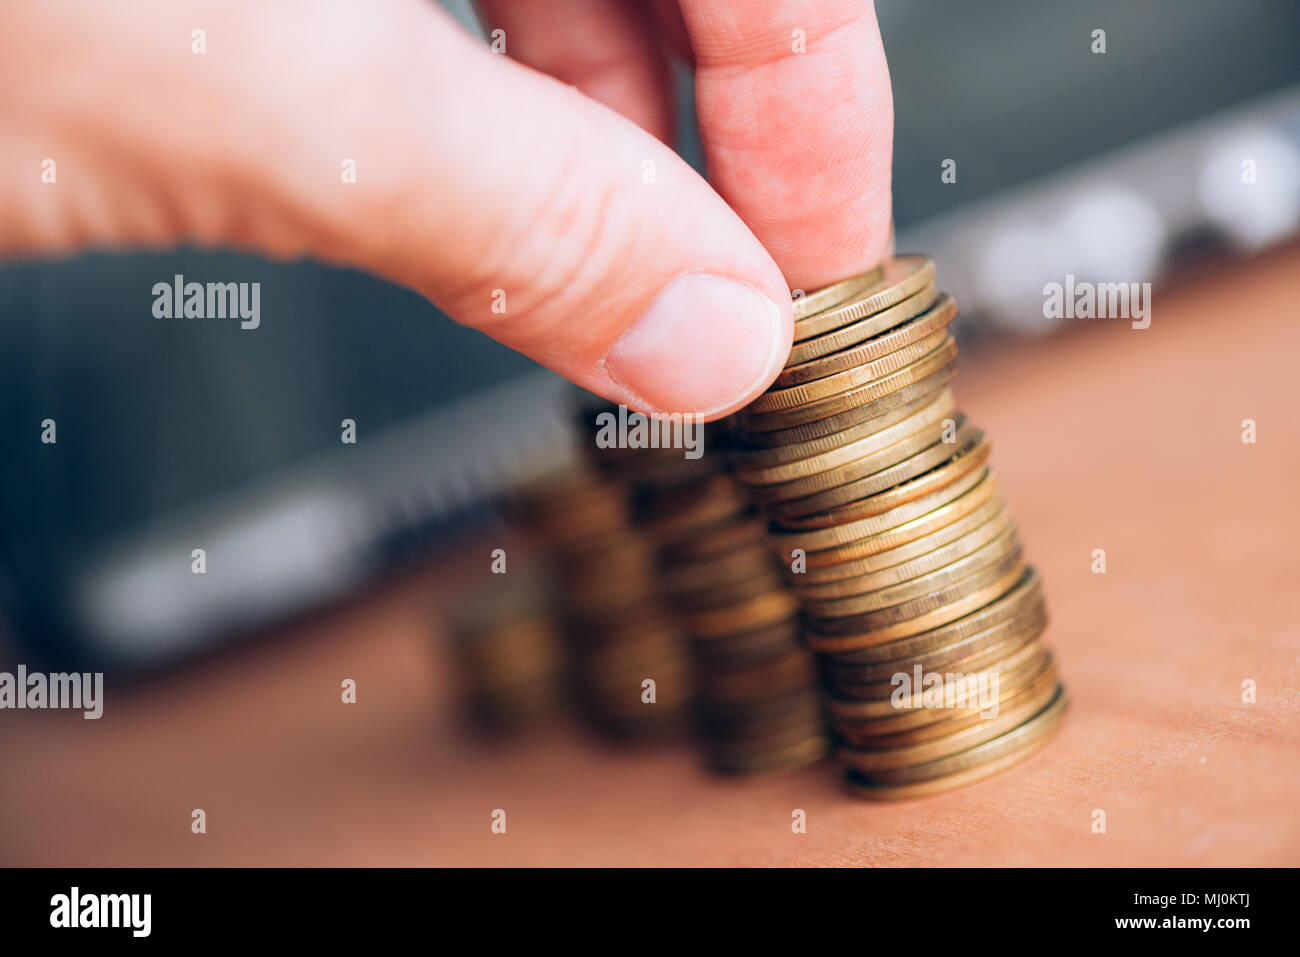 Close up of male hand stacking coins. Money savings and budgeting concept. - Stock Image